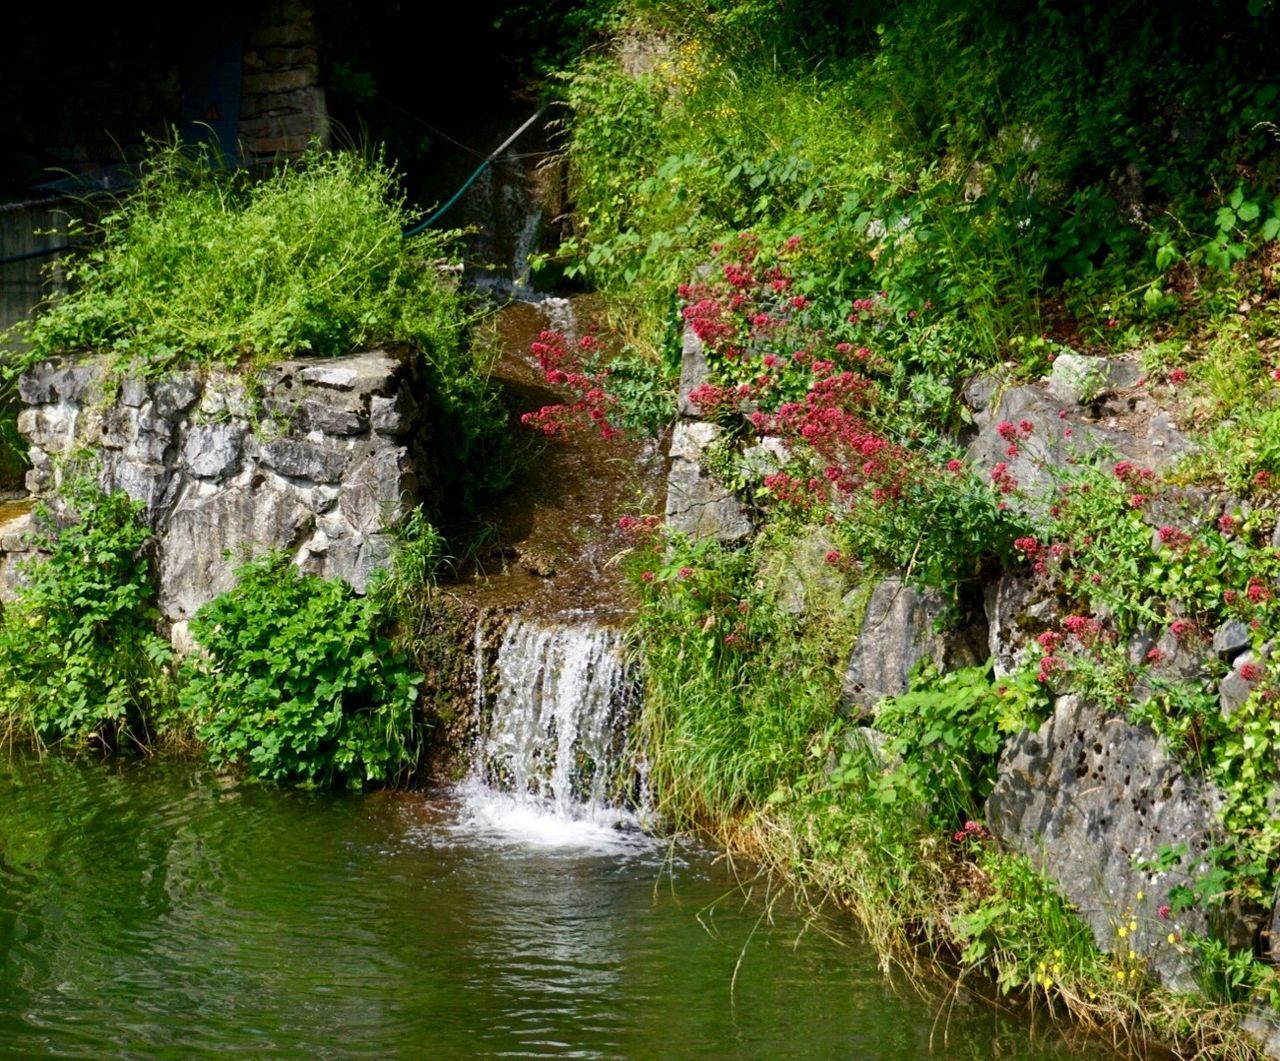 water, plant, nature, rock, solid, beauty in nature, no people, rock - object, scenics - nature, waterfall, flower, forest, day, outdoors, tree, green color, flowering plant, lake, formal garden, flowing water, stream - flowing water, ornamental garden, flowing